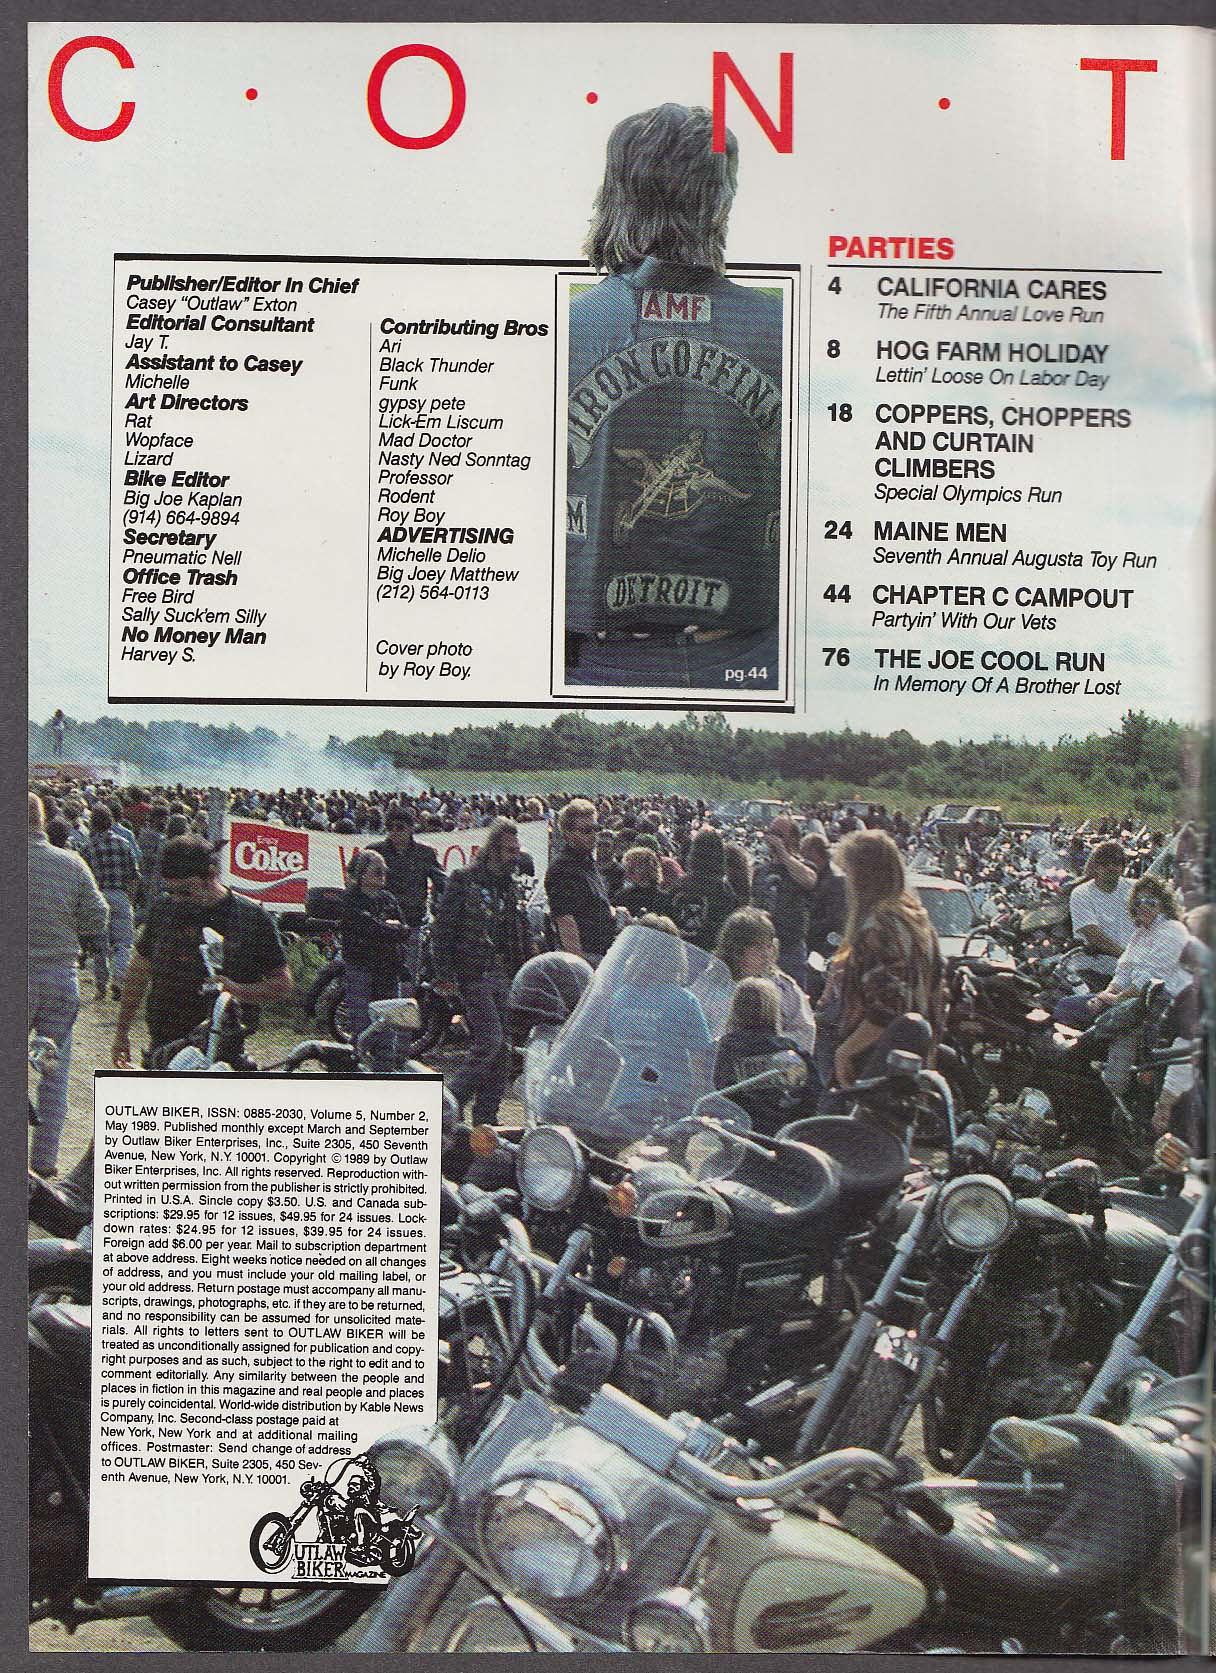 OUTLAW BIKER Special Olympics Hog Farm Holiday ++ 5 1989